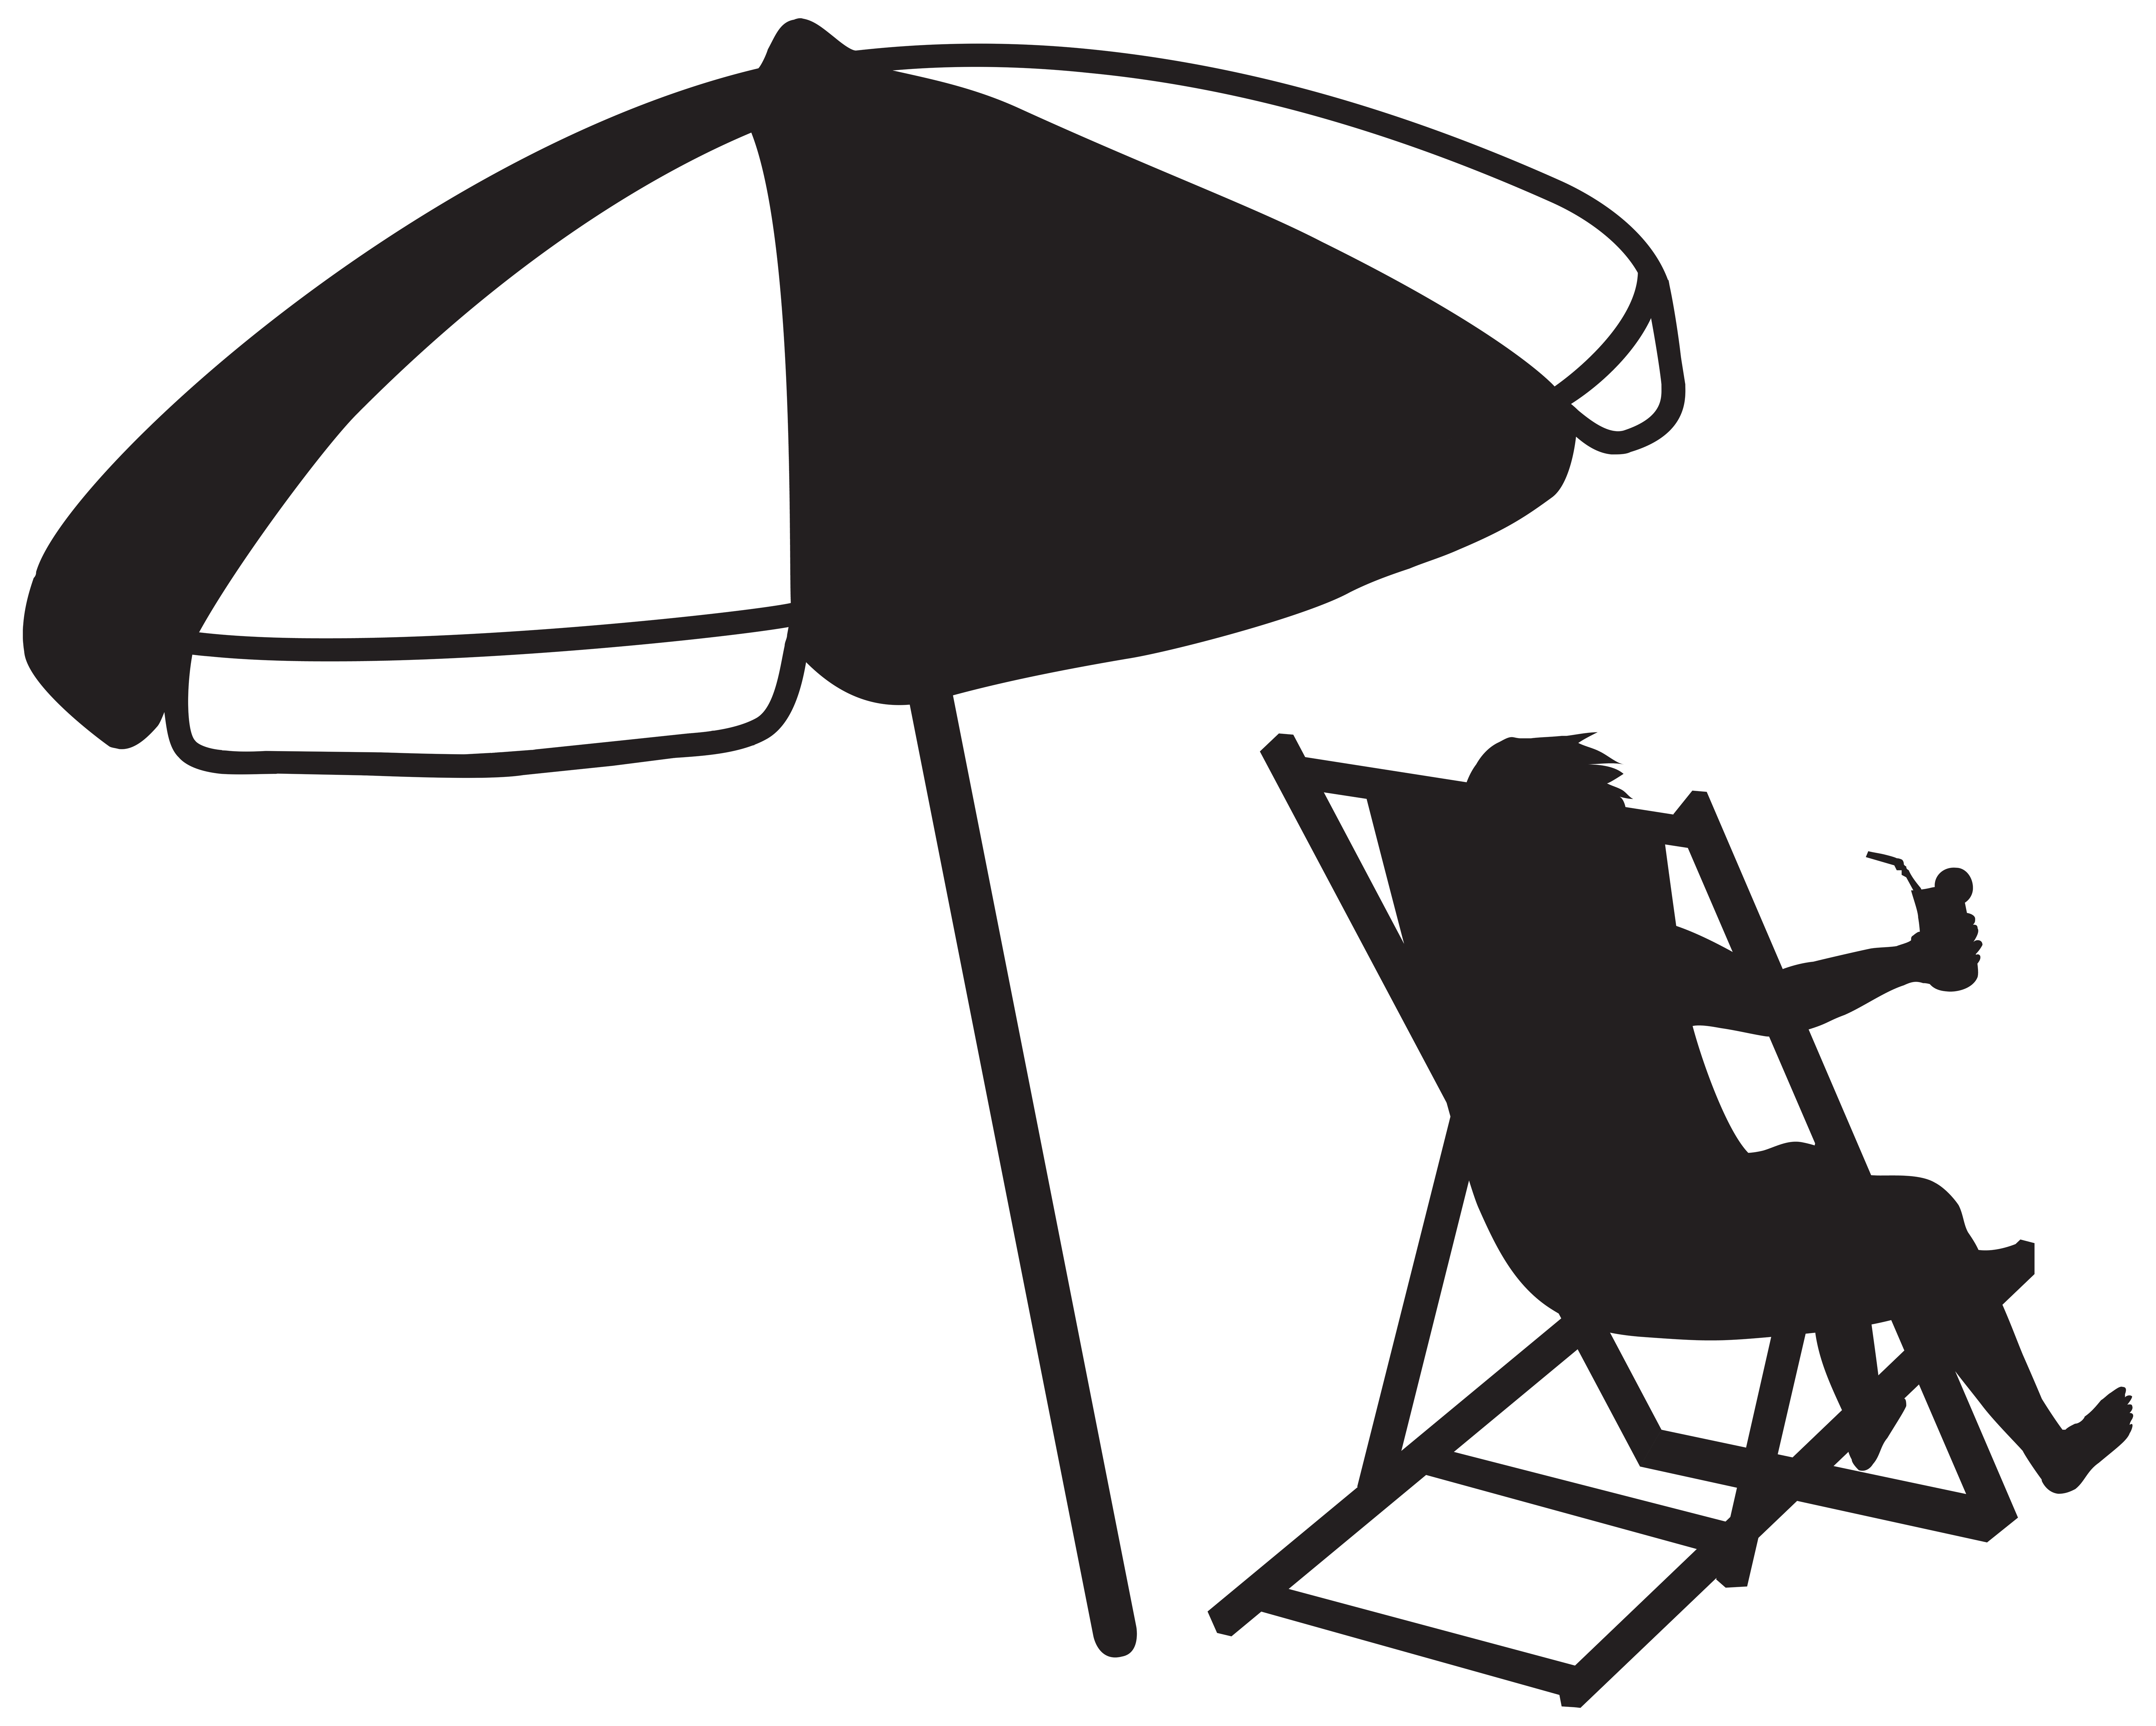 Umbrella Clipart Black And White | Free download on ClipArtMag